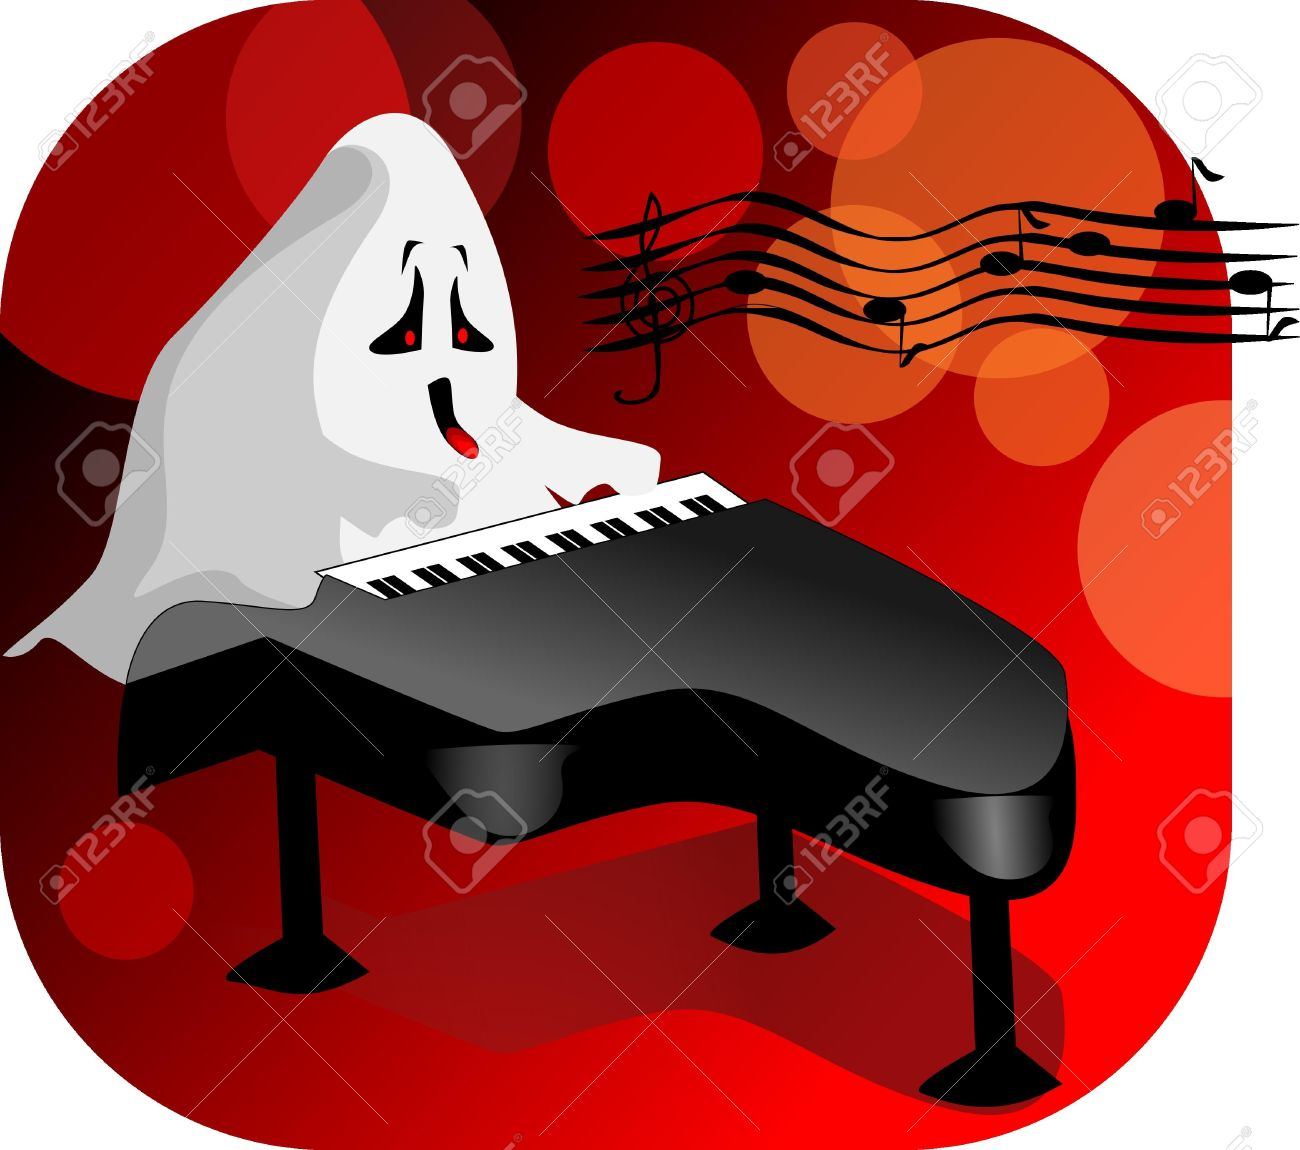 https://i2.wp.com/previews.123rf.com/images/bruniewska/bruniewska1109/bruniewska110900019/10689148-Spirit-at-the-piano-Illustration-of-a-ghost-playing-the-piano-Stock-Vector.jpg